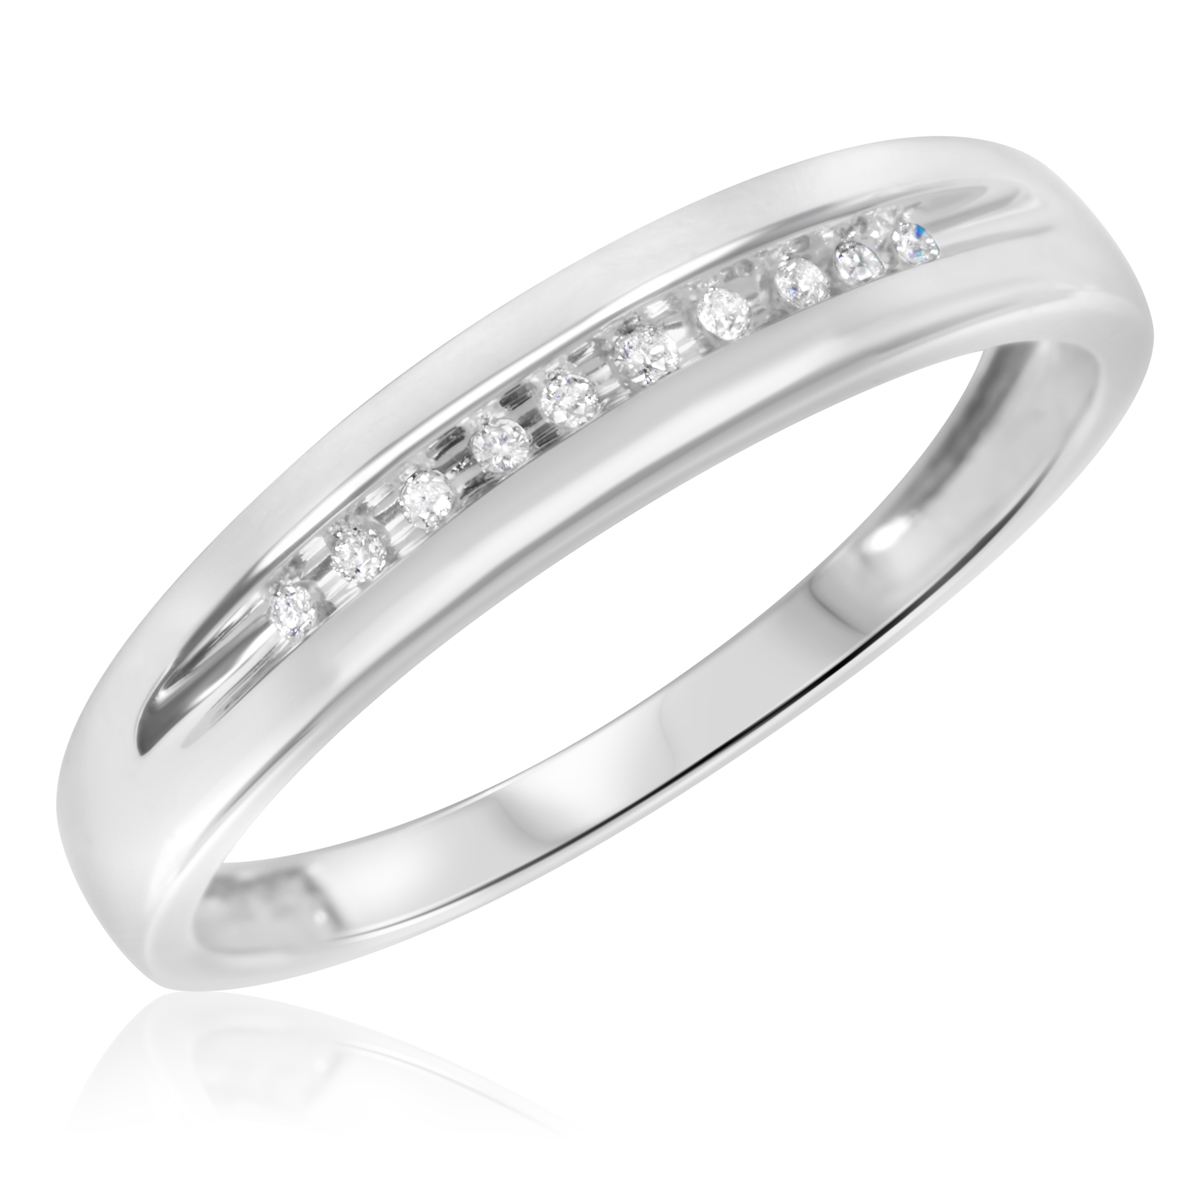 wedding band white gold plain white gold wedding band Flat Wedding Ring White Gold Rings